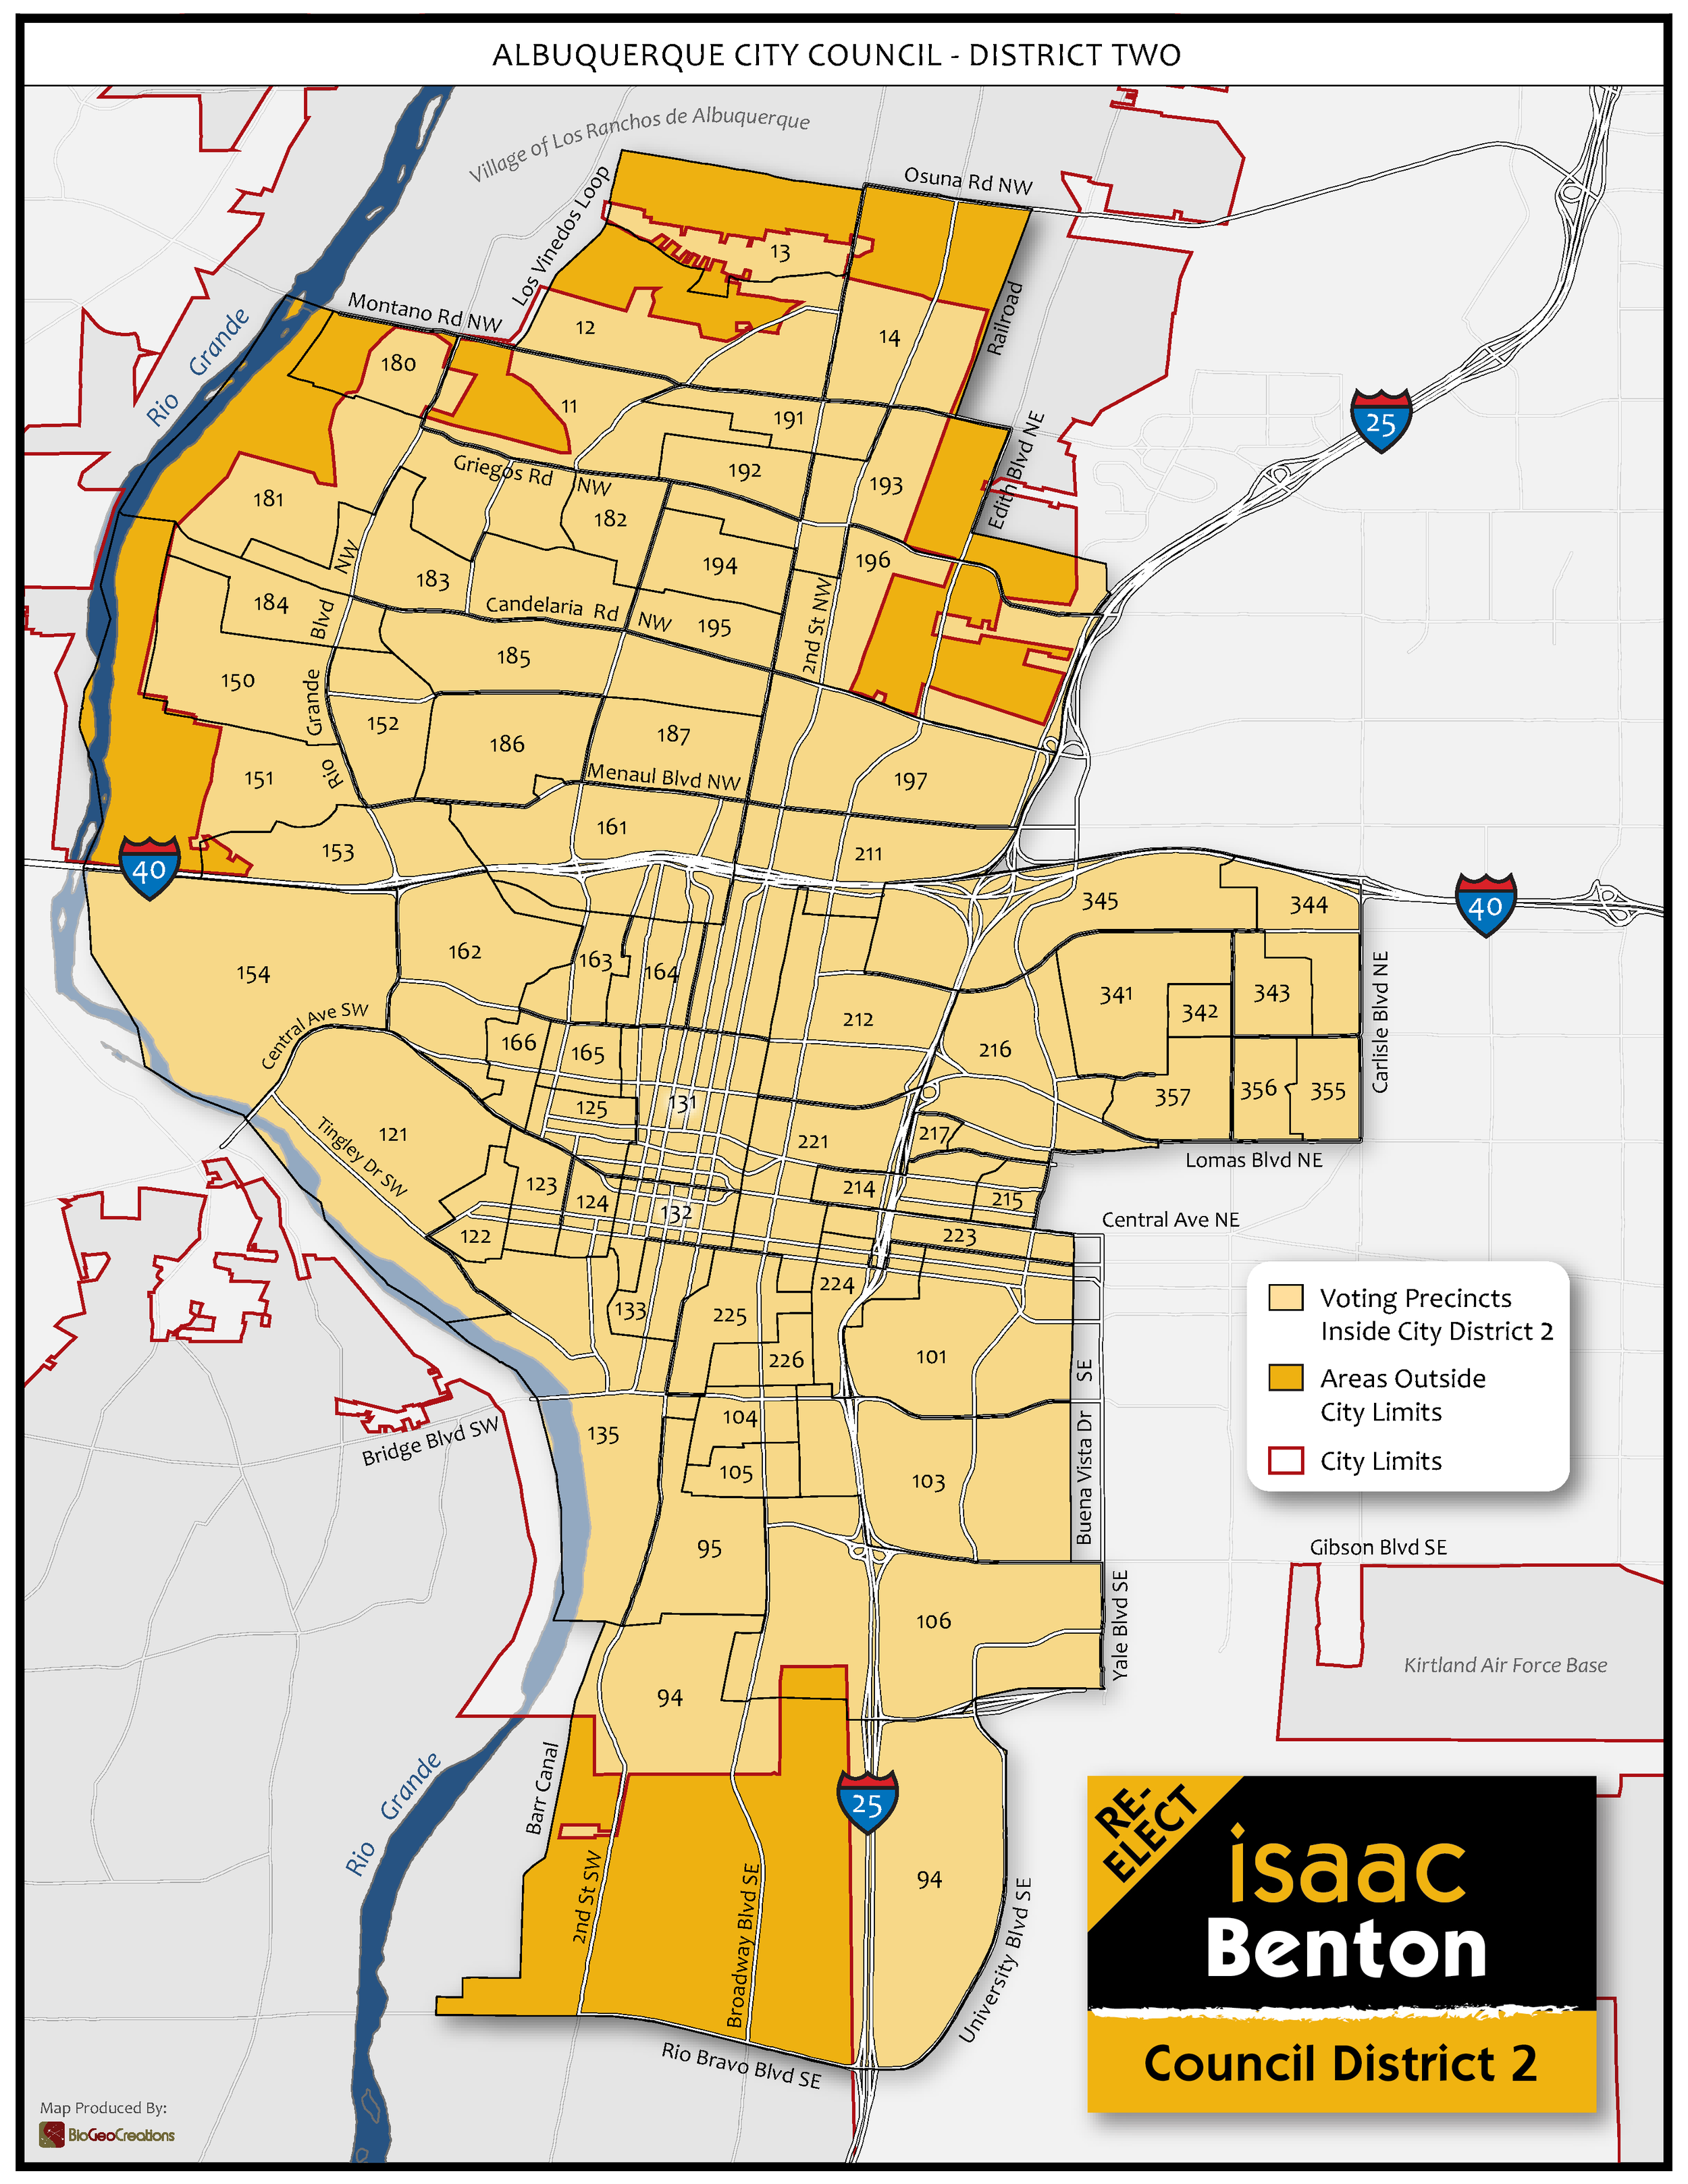 ABQ CIty Council District 2 2015.png